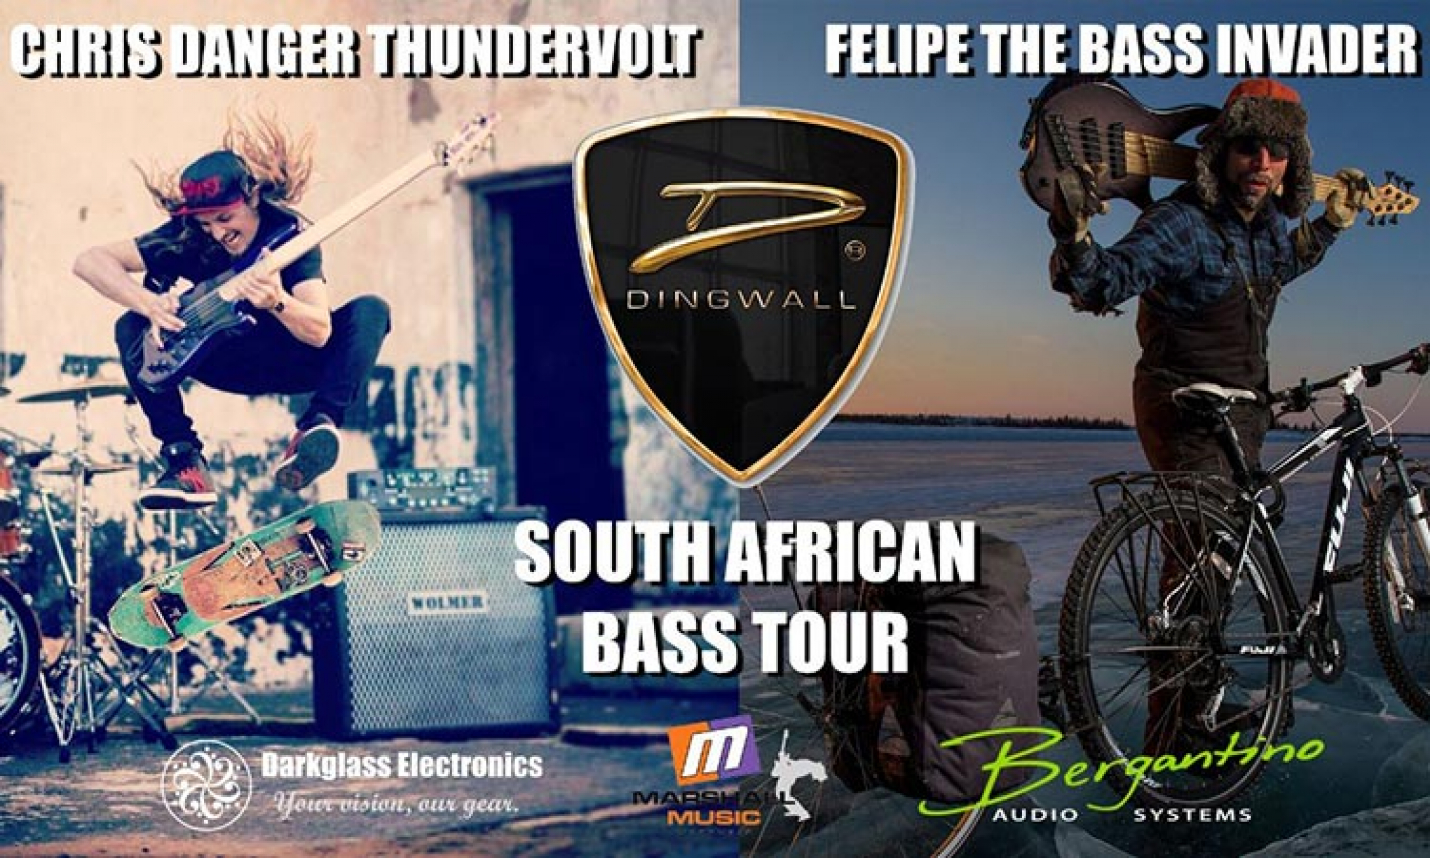 Chris Danger Teams up with Felipe for South African Dingwall Bass Tour